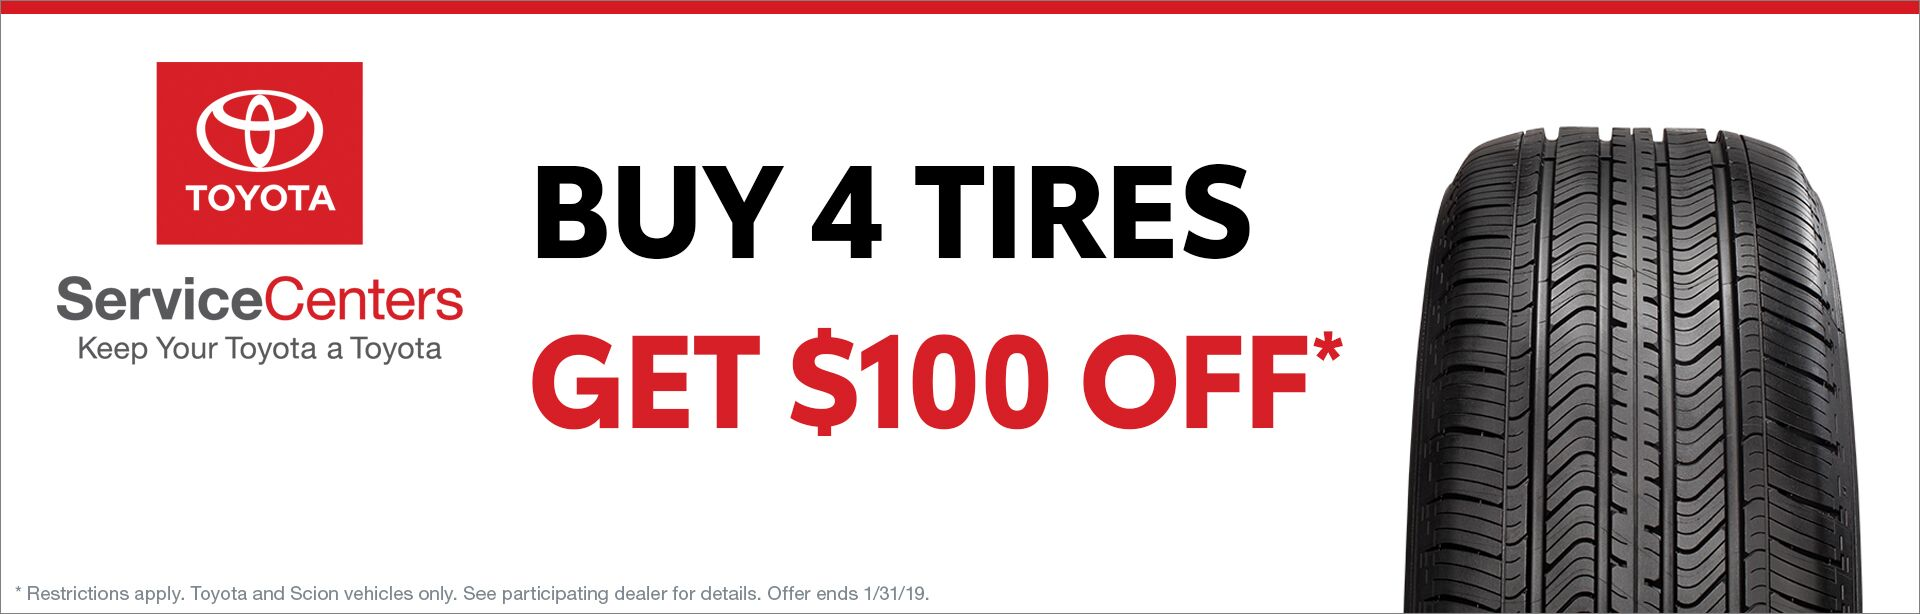 Buy 4 Tires - Get $100 Off